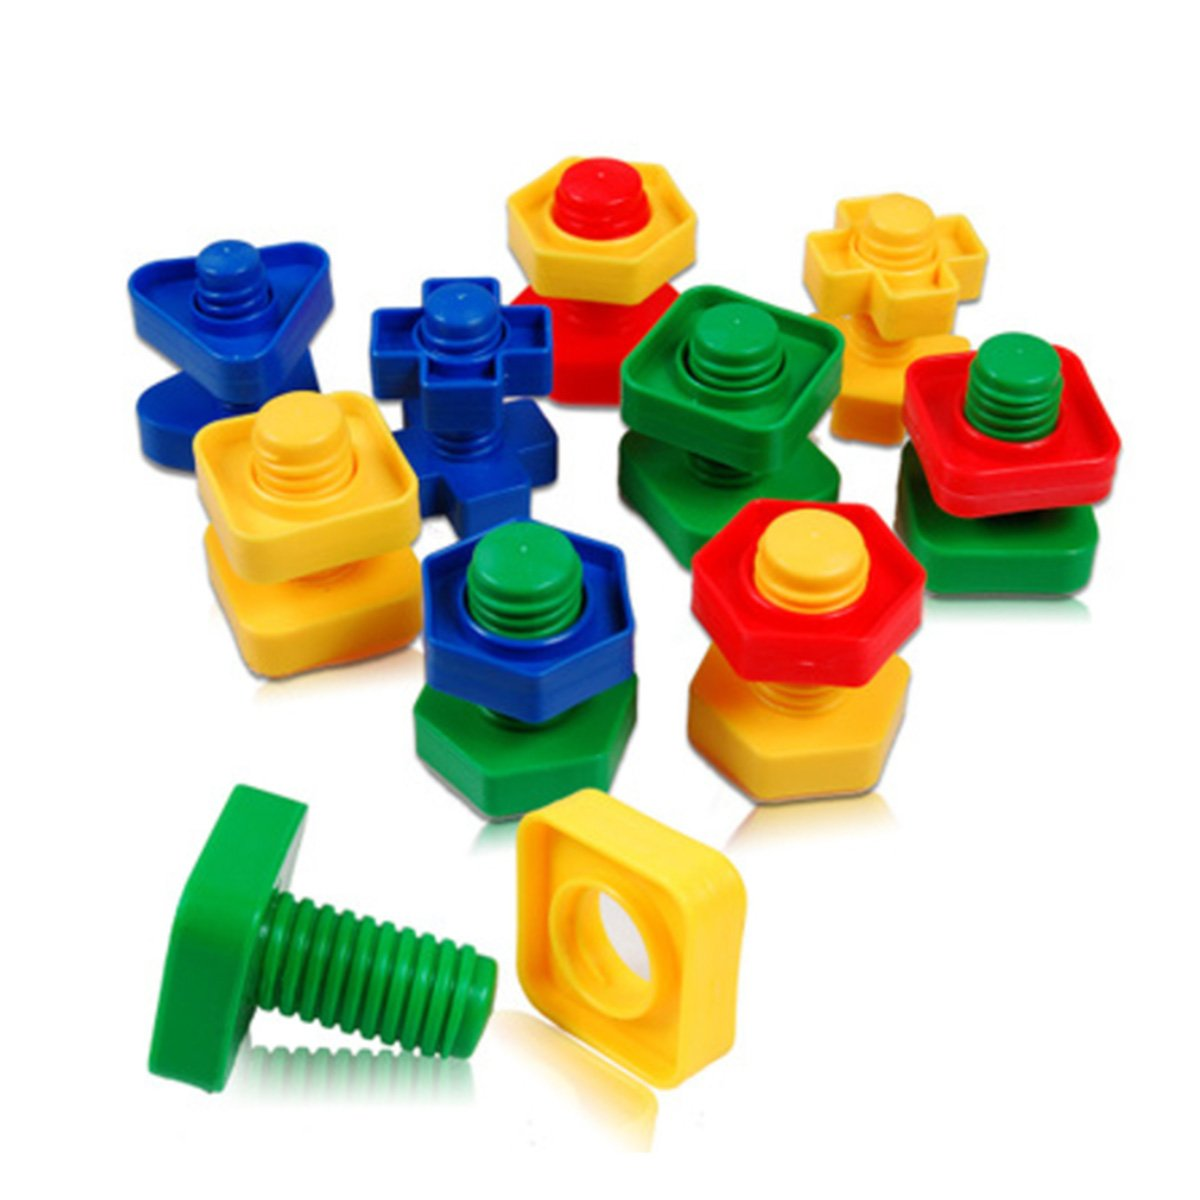 32 Pcs Jumbo Nuts and Bolts, Occupational Therapy Autism, Jumbo Nuts Bolts Toy, Screw nut toy, Screw toy,Jumbo Screw nut, Kids Matching Game Safe Material for Kids